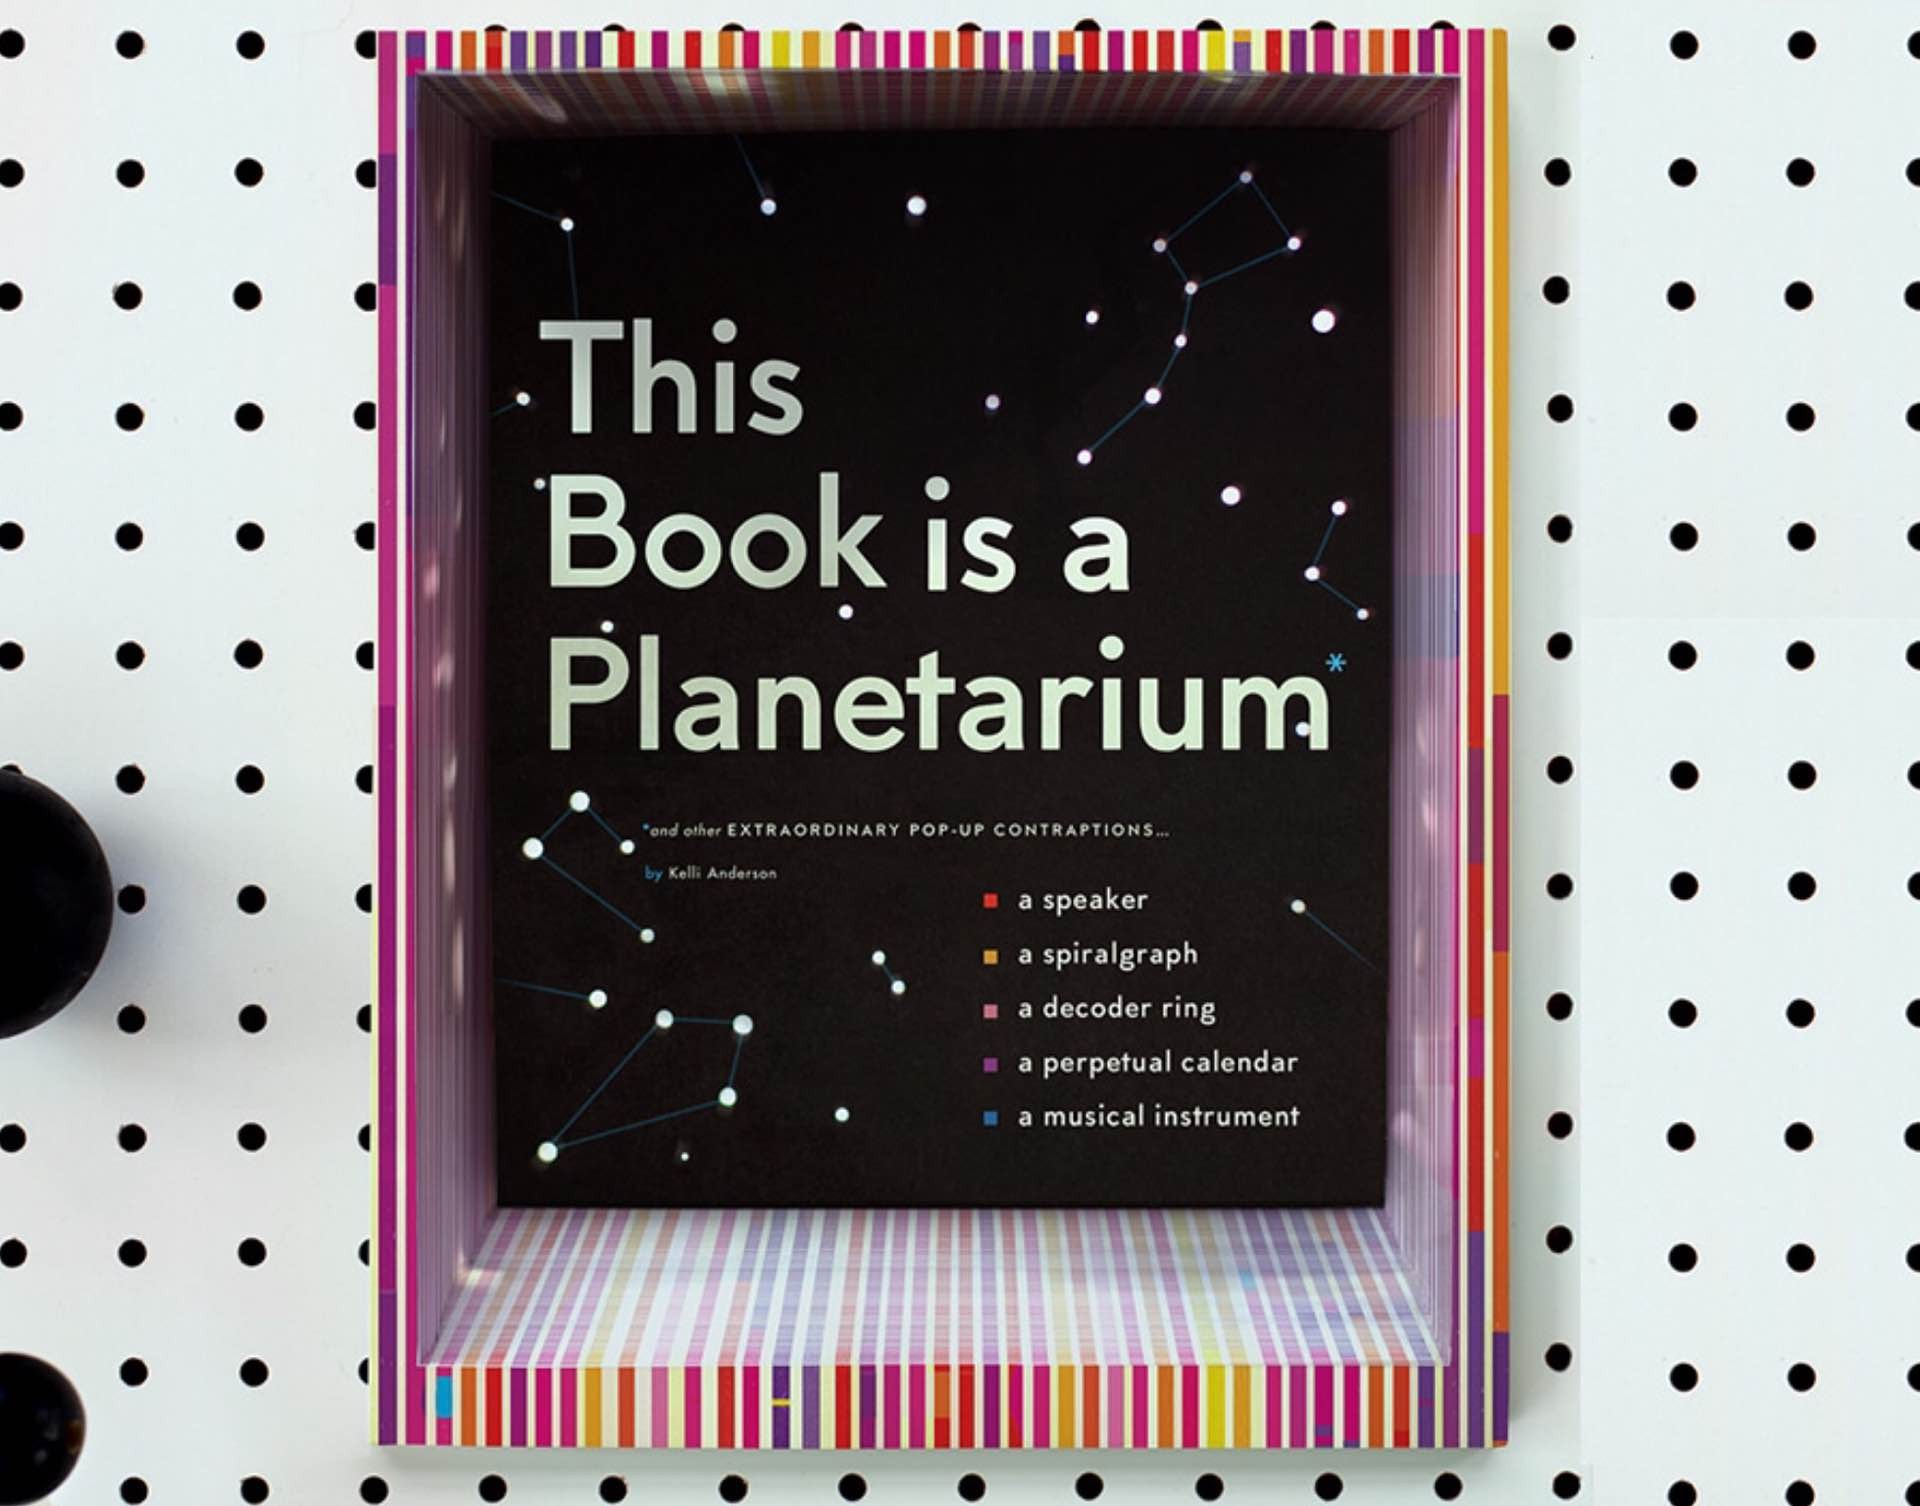 this-book-is-a-planetarium-by-kelli-anderson